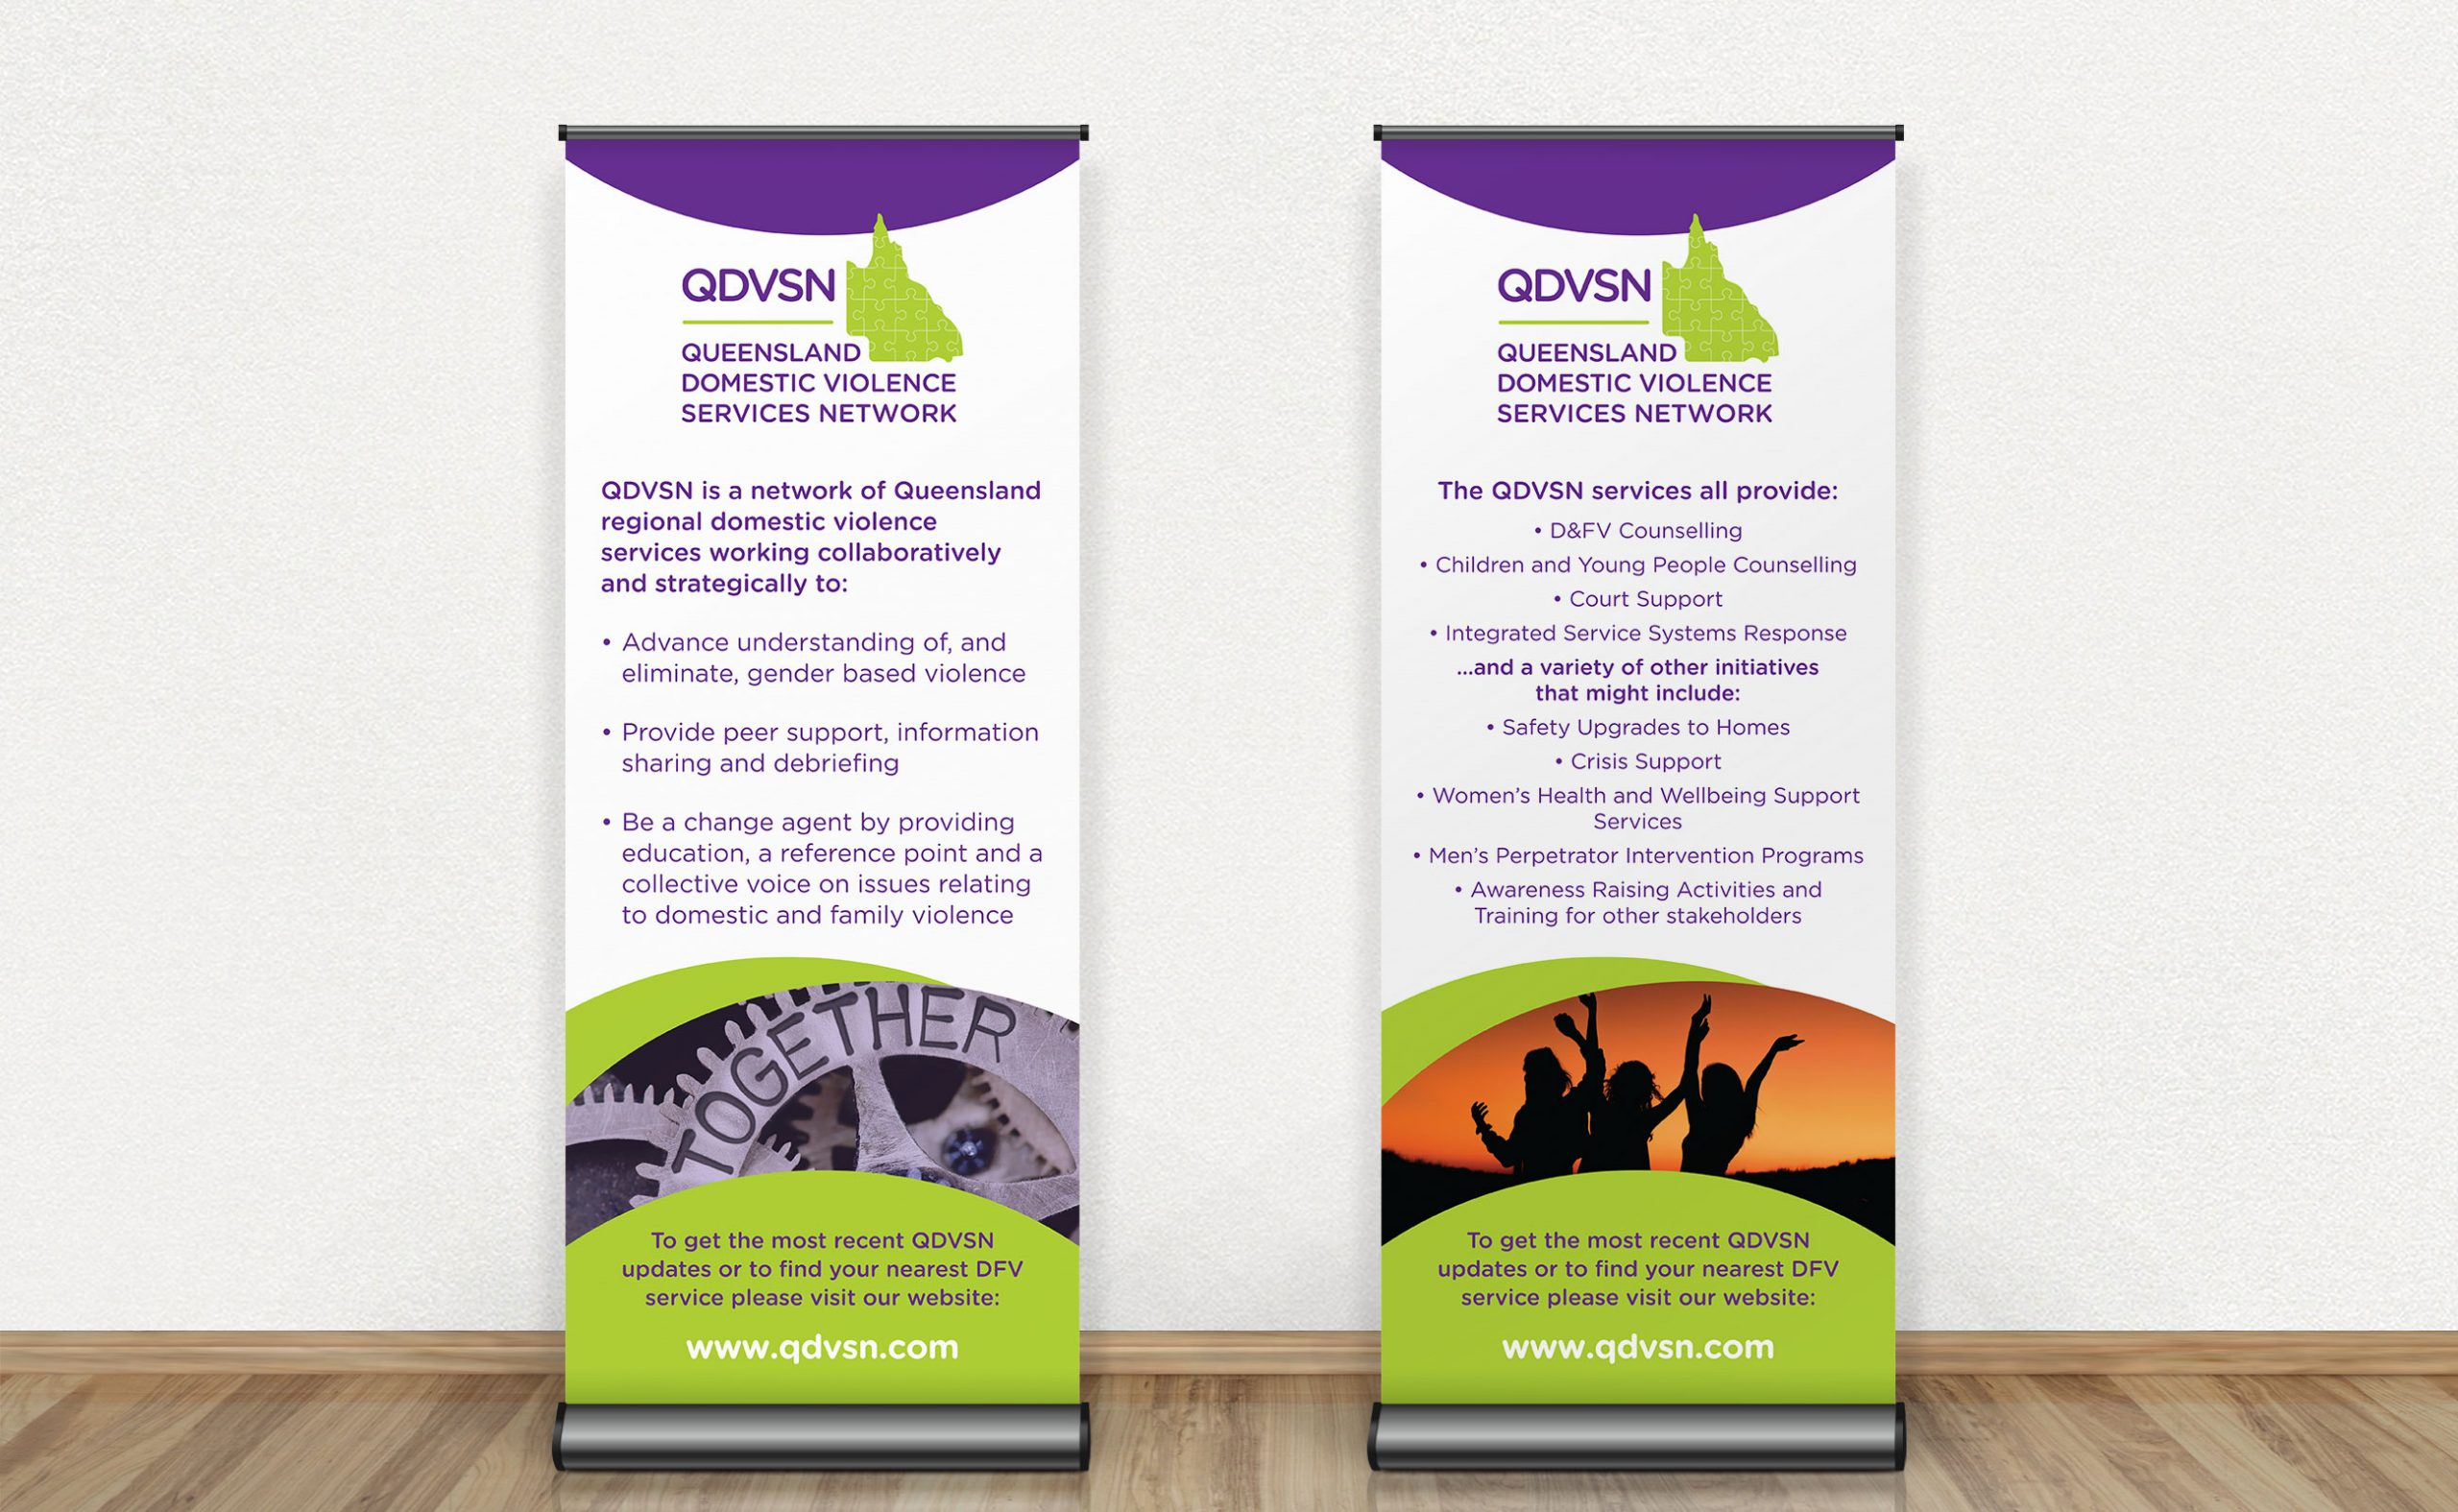 Two stand up banners advertising services of QDVSN